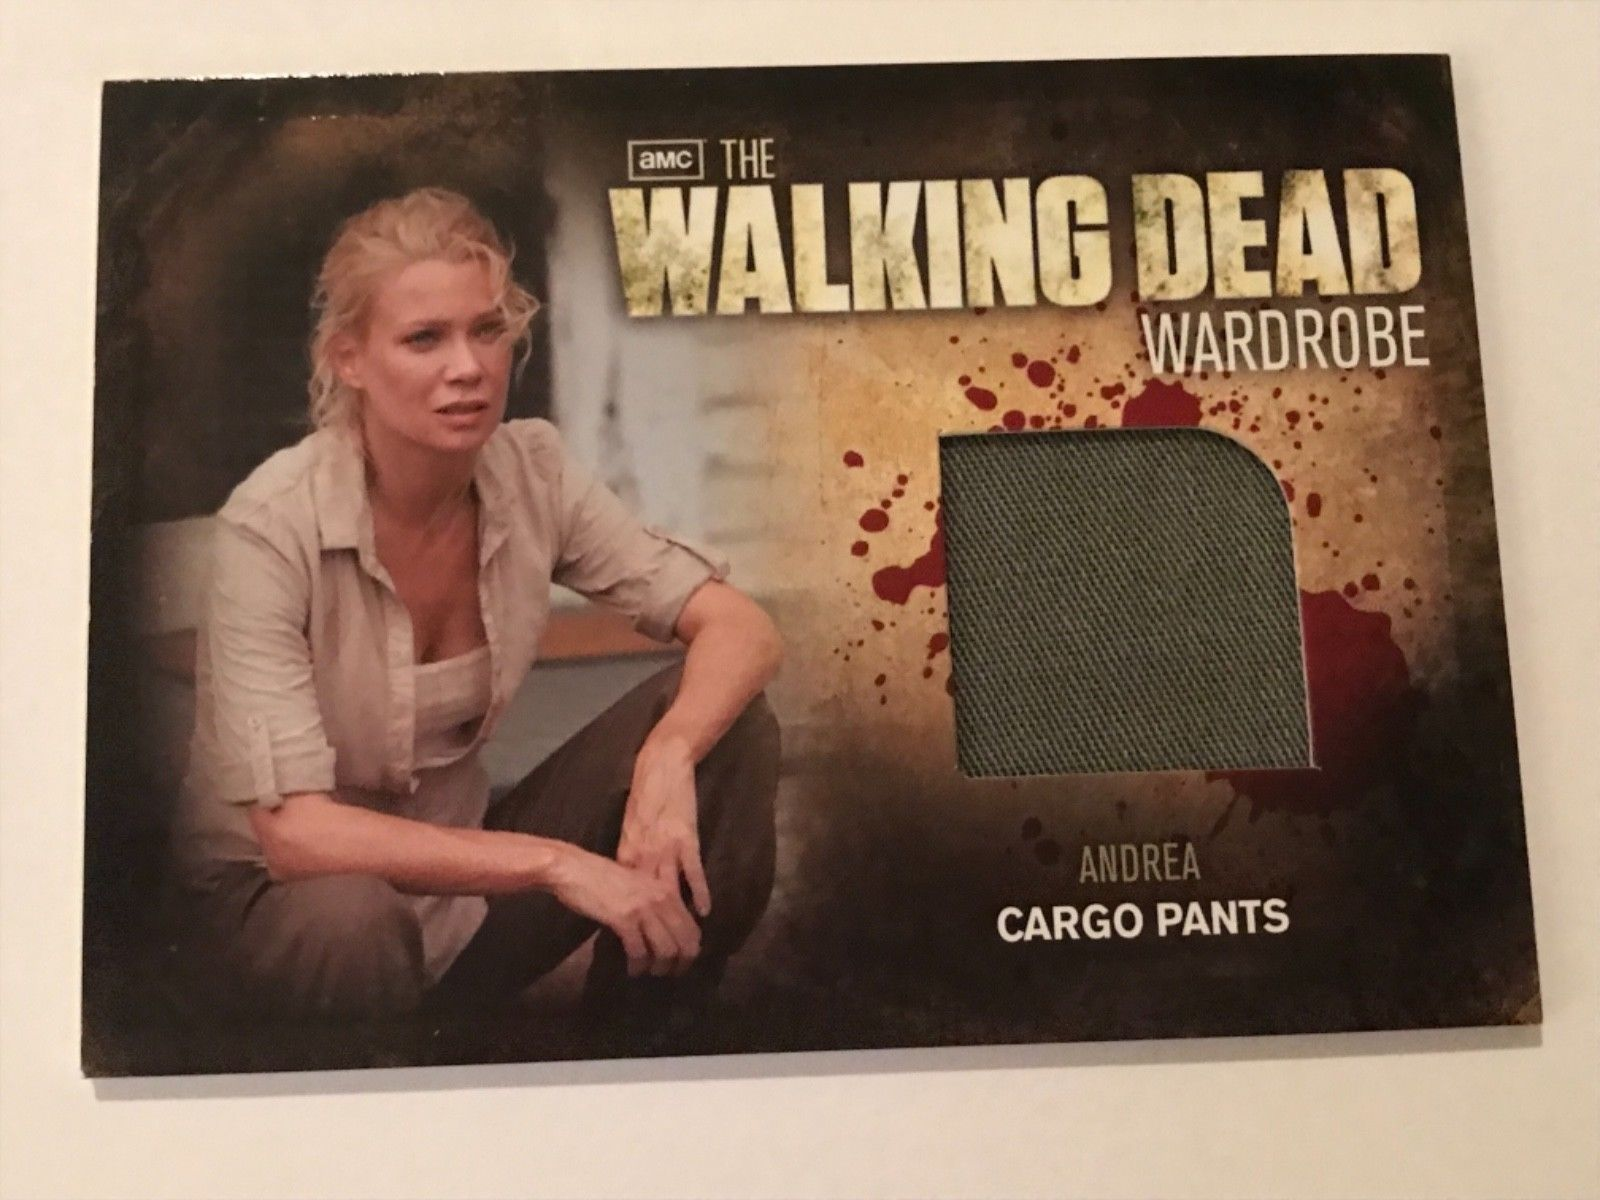 Primary image for Cryptozoic Walking Dead Season 2 Wardrobe Laurie Holden as Andrea M19